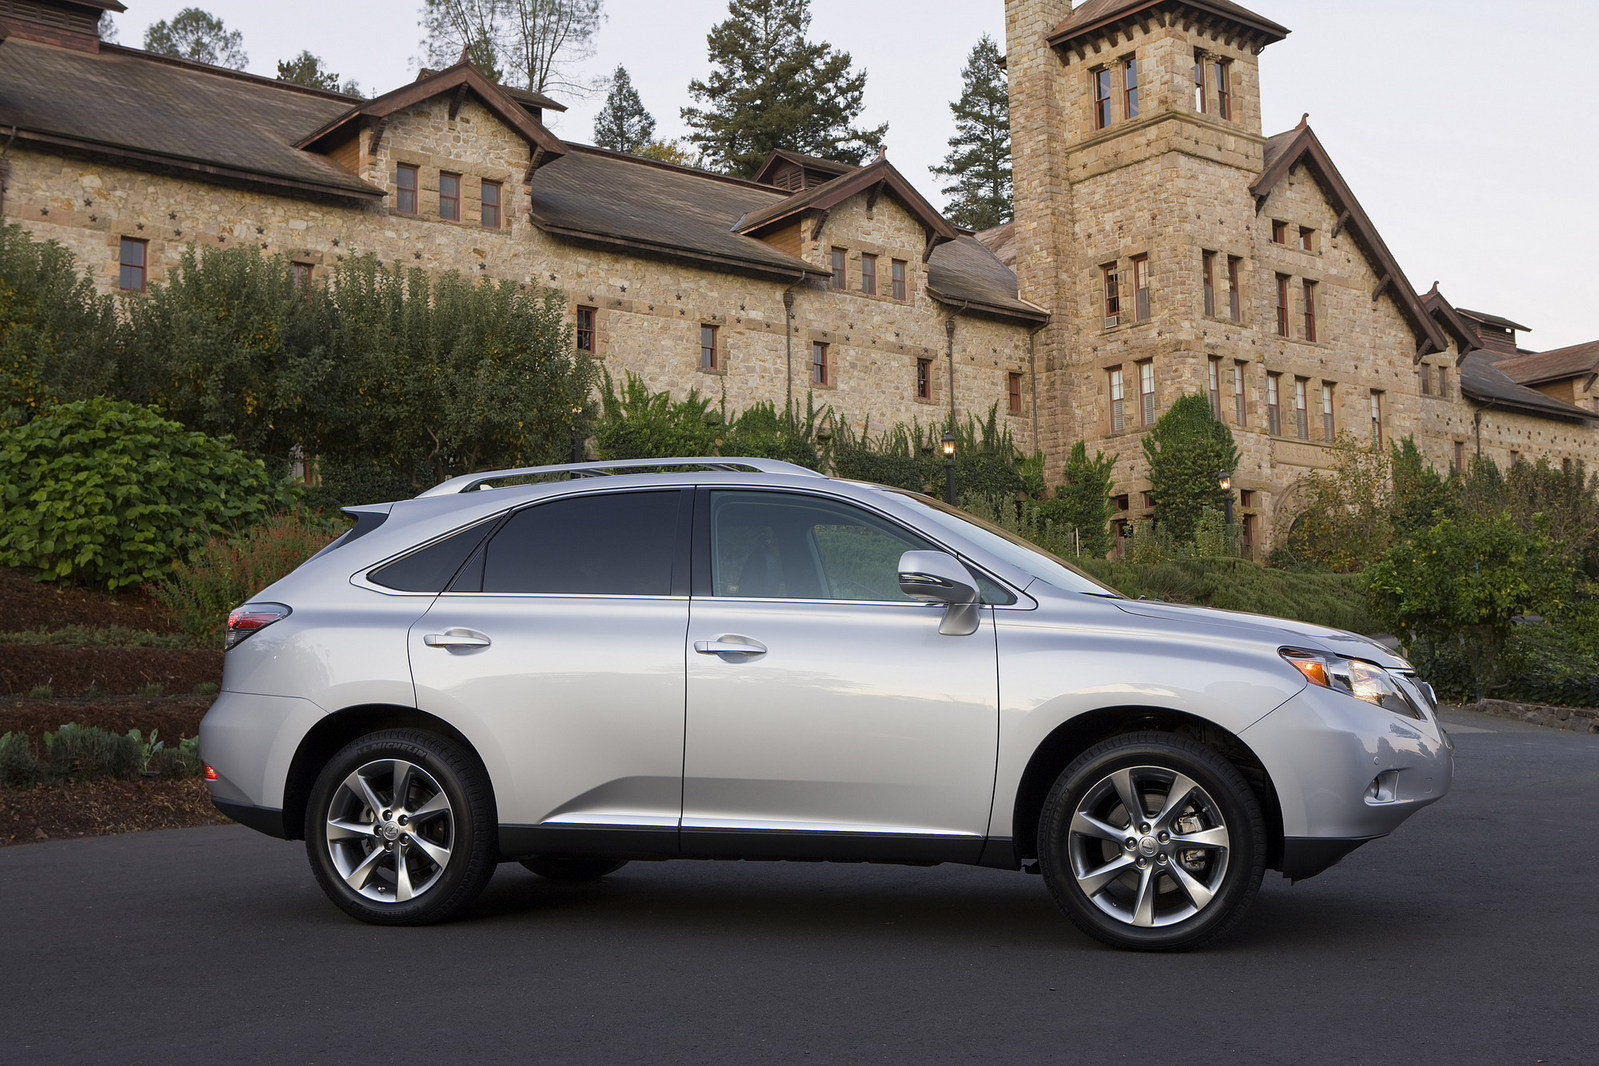 2010 lexus rx 350 picture 353551 car review top speed. Black Bedroom Furniture Sets. Home Design Ideas